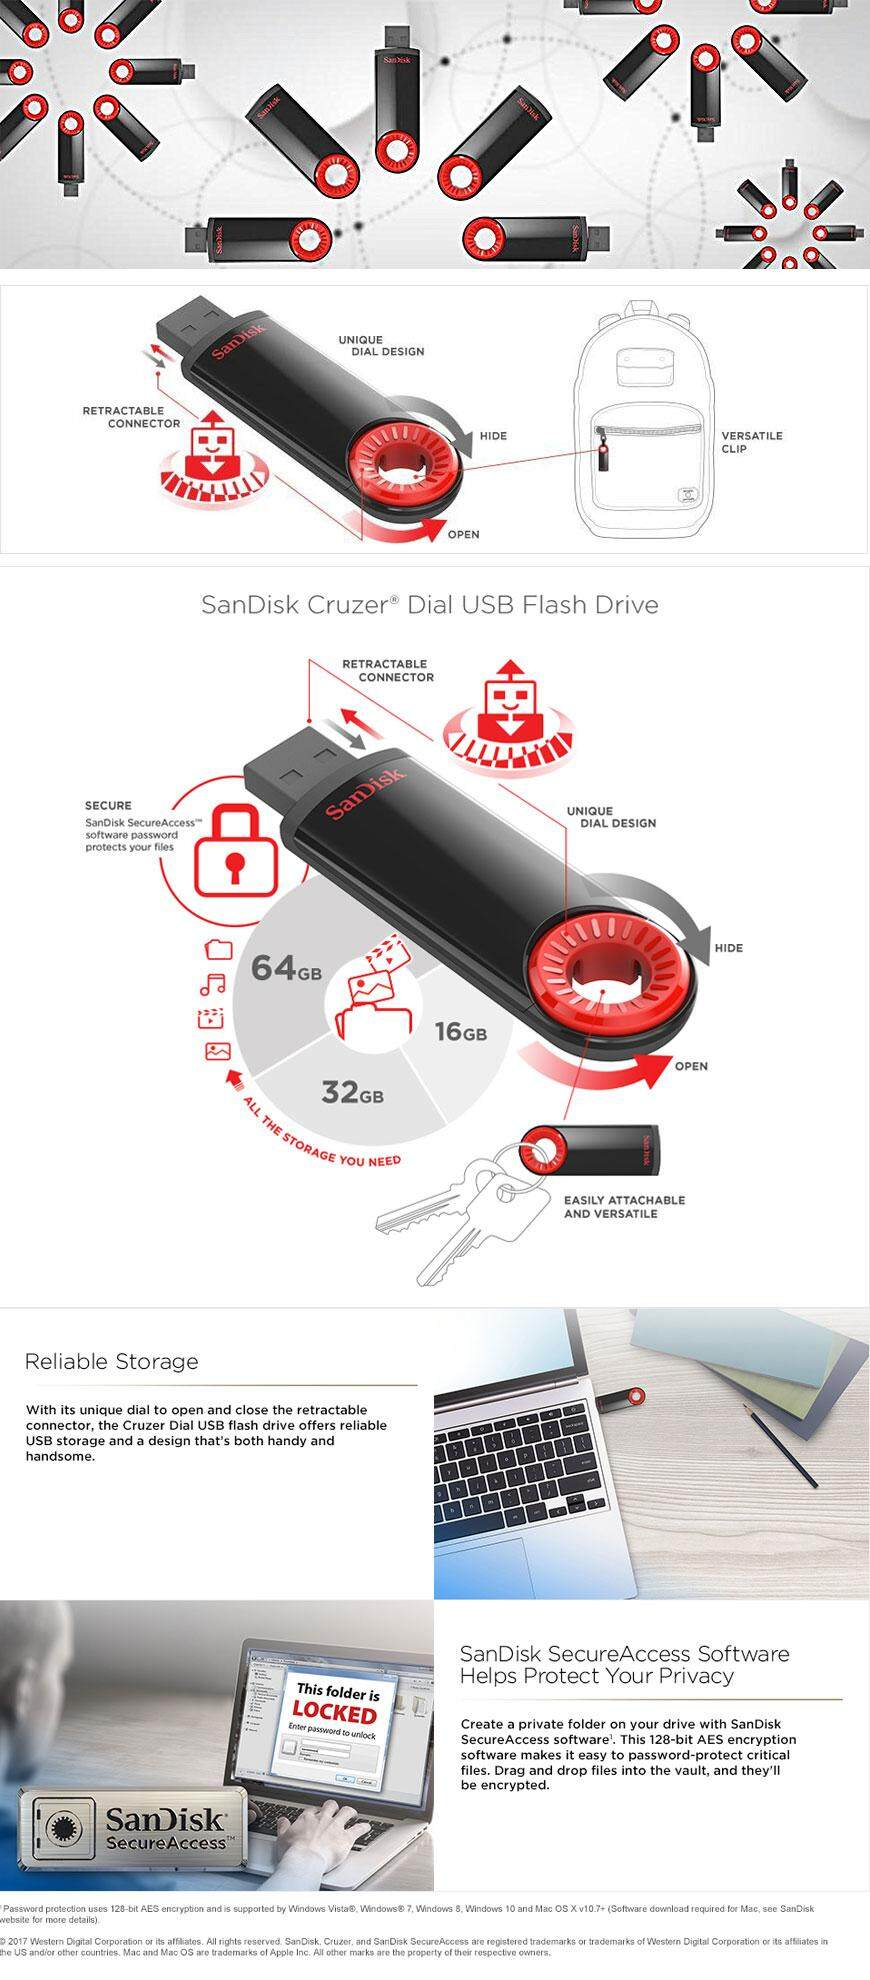 Sandisk Cruzer Dial 64gb Usb 20 Flash Drive Cz57 Malaysia Switch 1 Gigabyte Gb Billion Bytes Some Capacity Not Available For Data Storage Approximations Results Will Vary Based On File Size Resolution